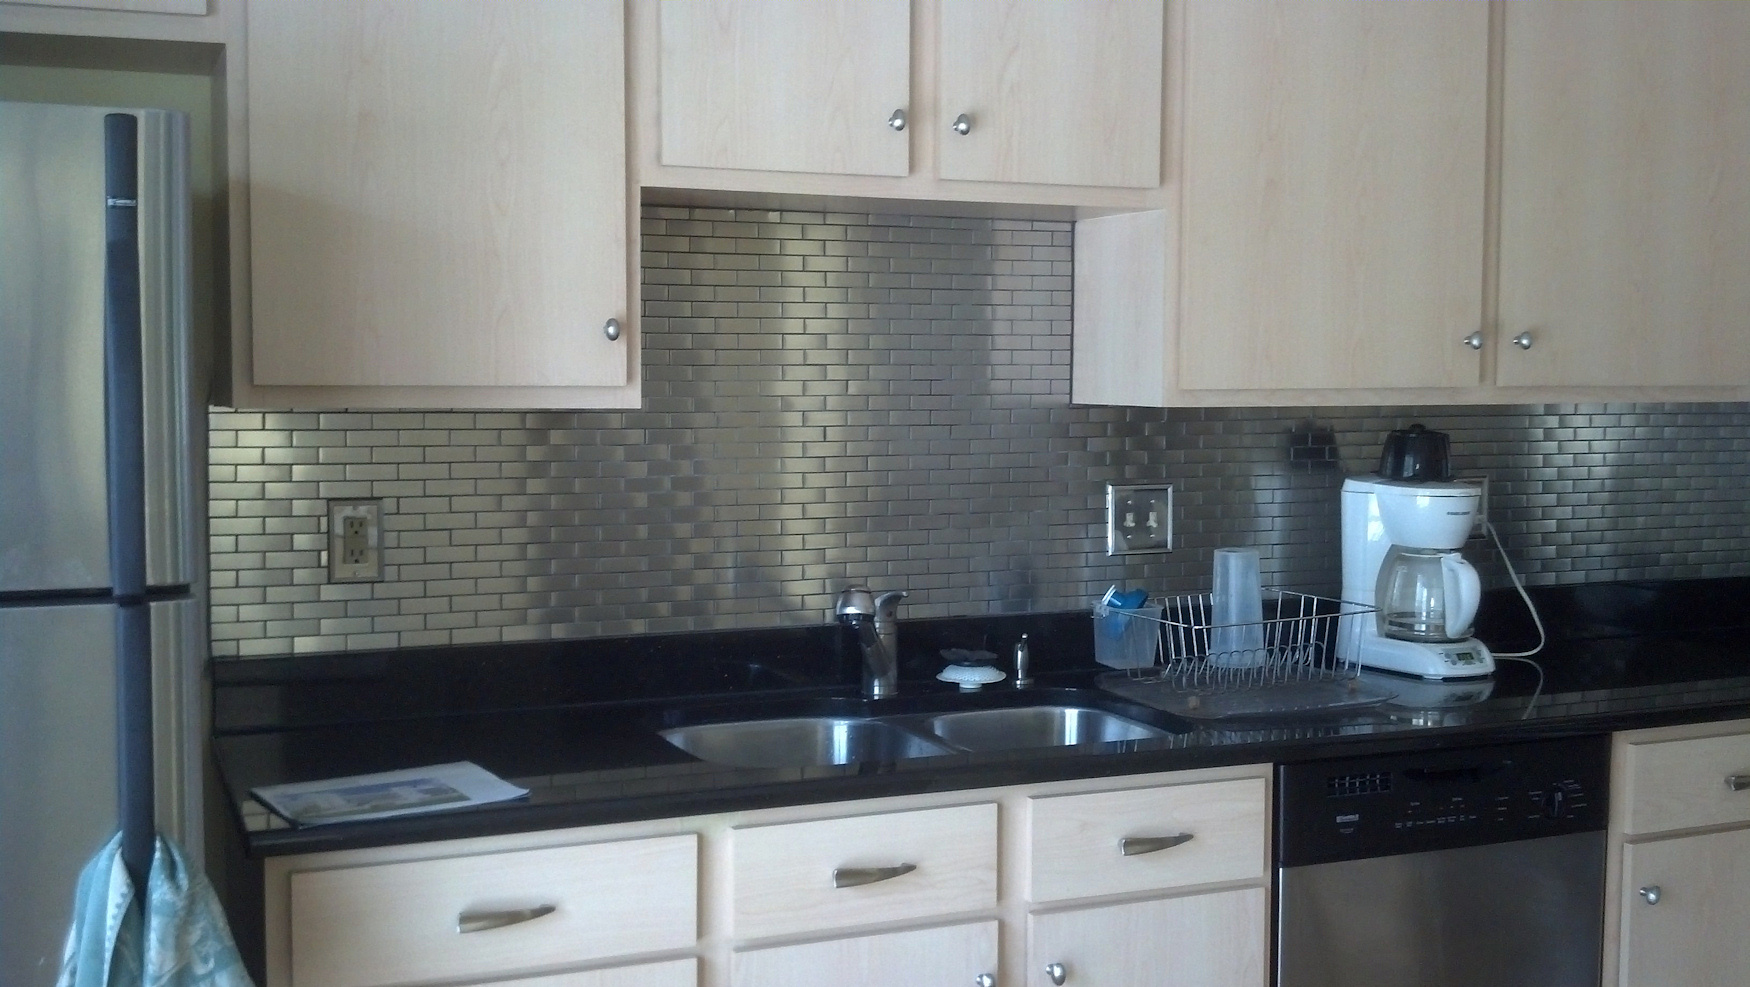 Backsplash Tile Modern Ikea Stainless Steel Backsplash | Homesfeed